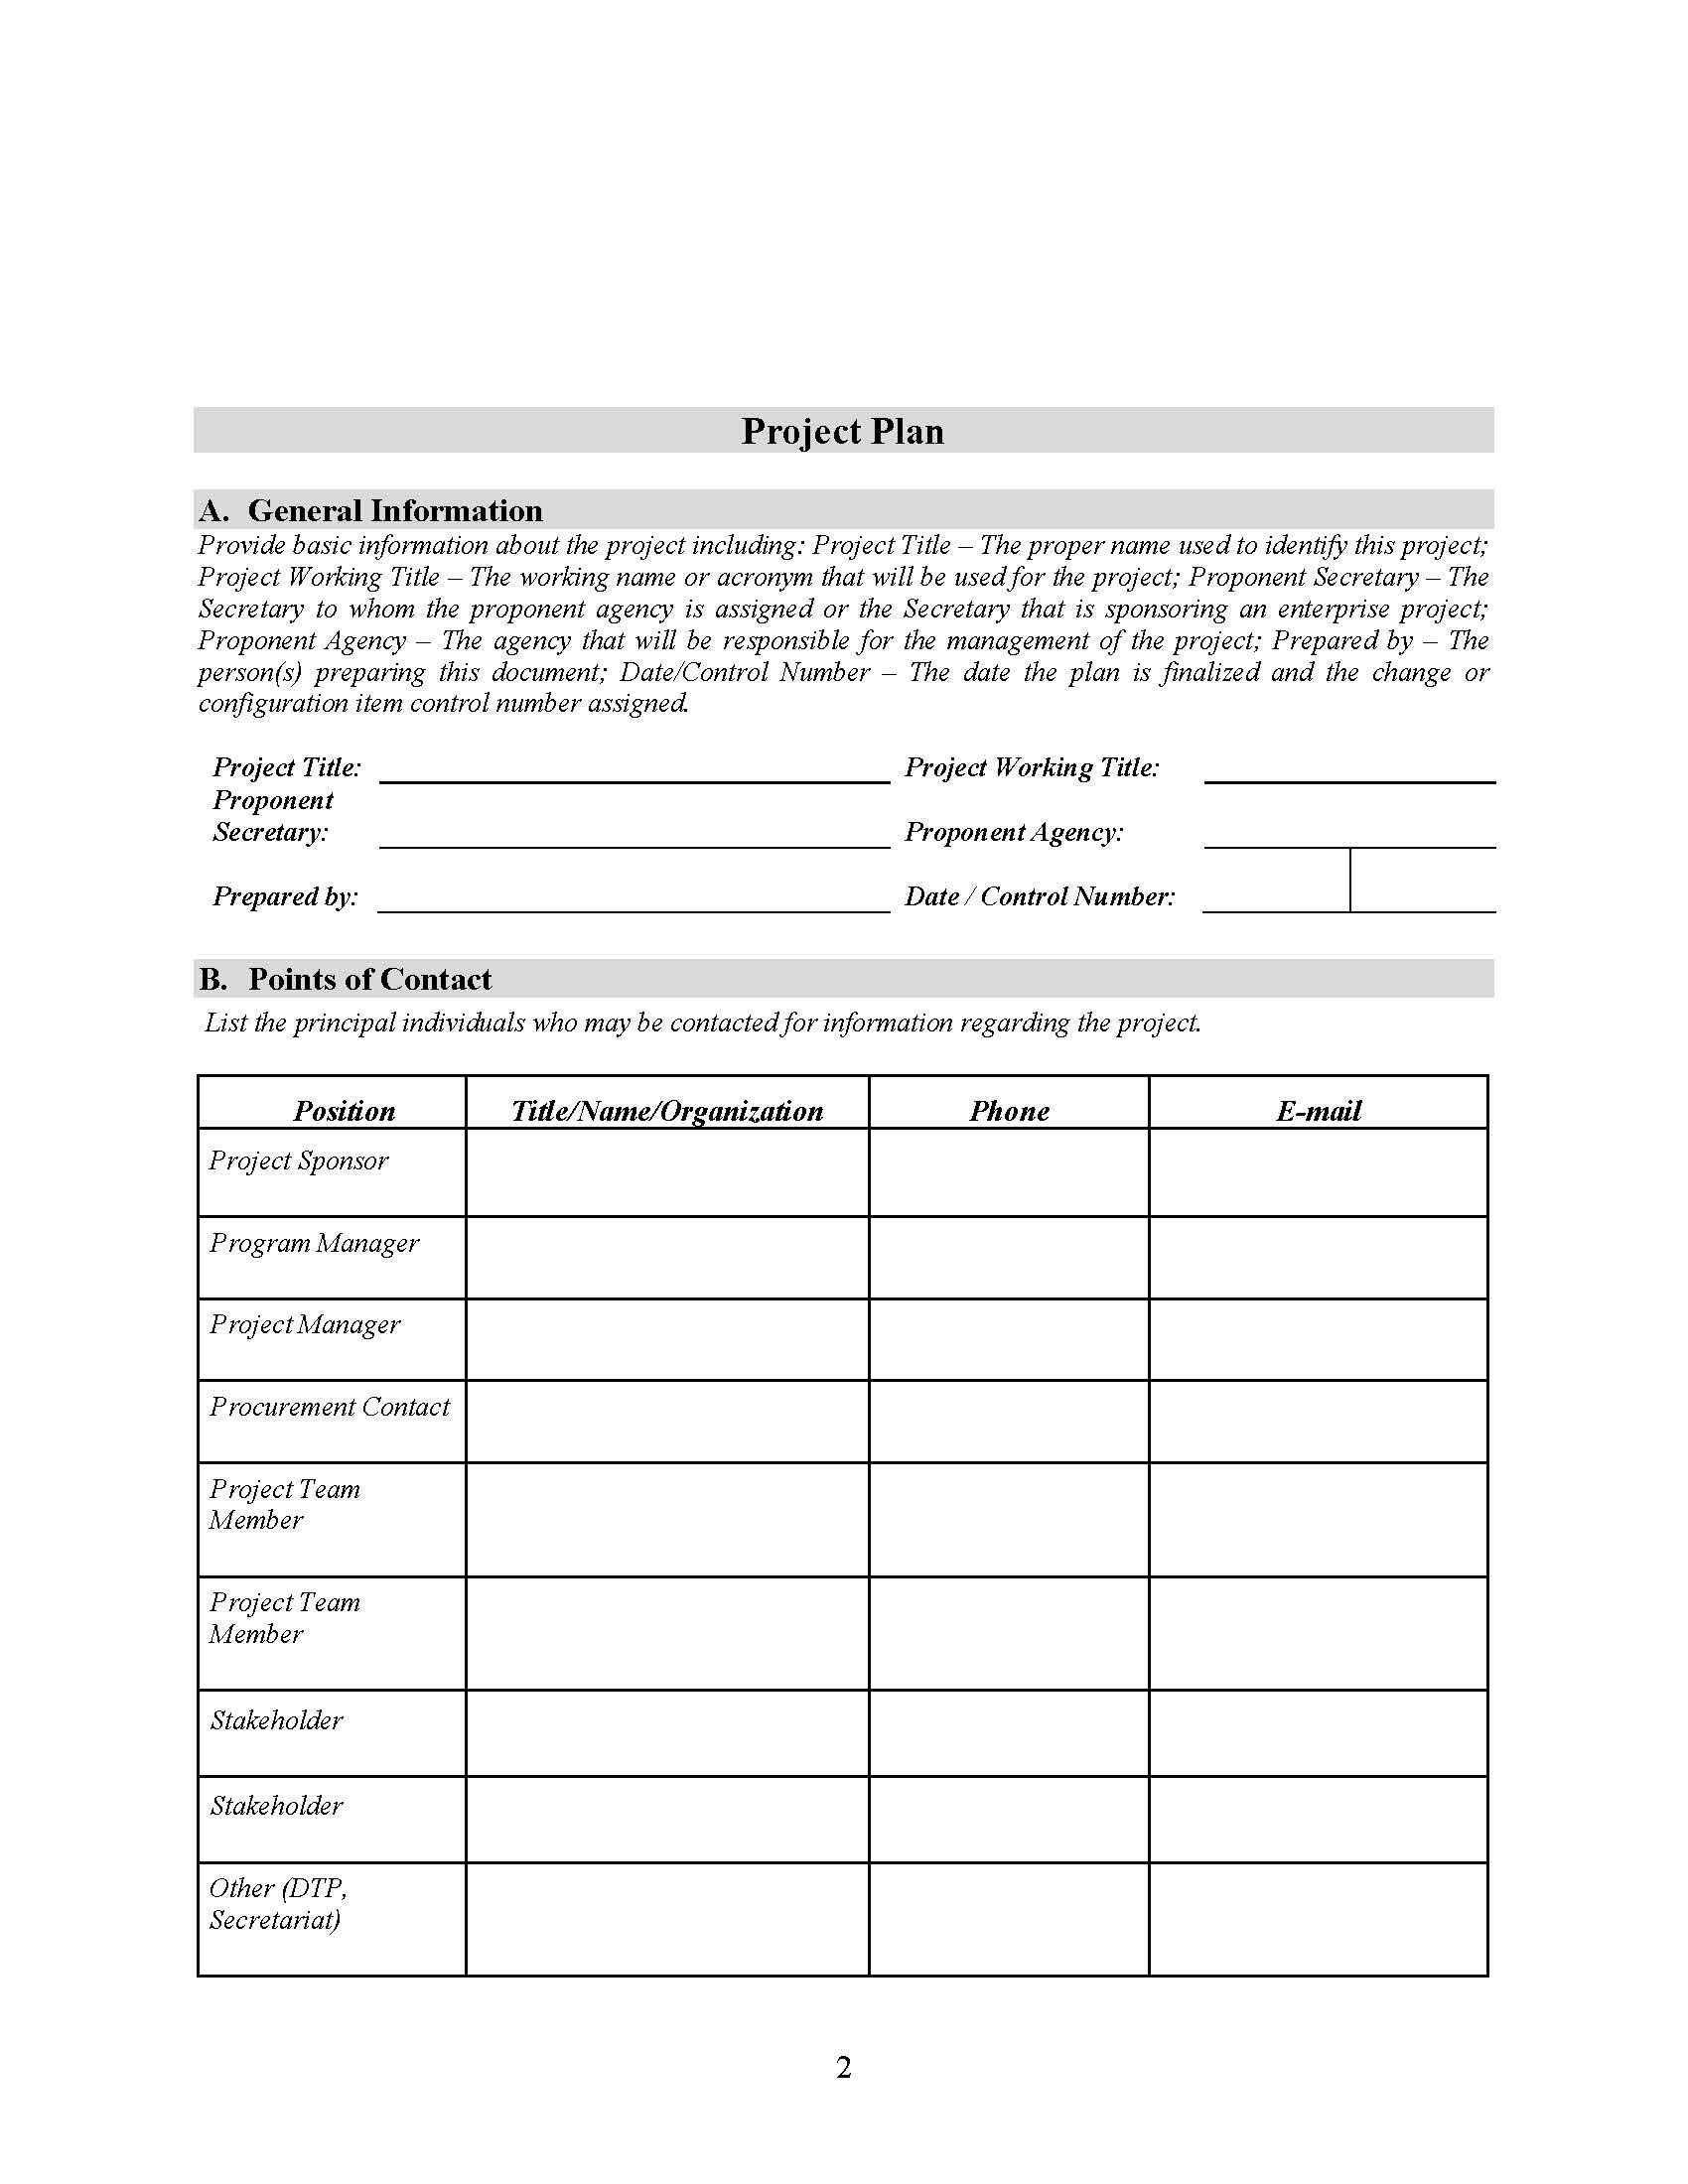 Free Project Plan Template In Word In 2021 Budget Template Budgeting Lesson Plans For Toddlers Free project plan template word